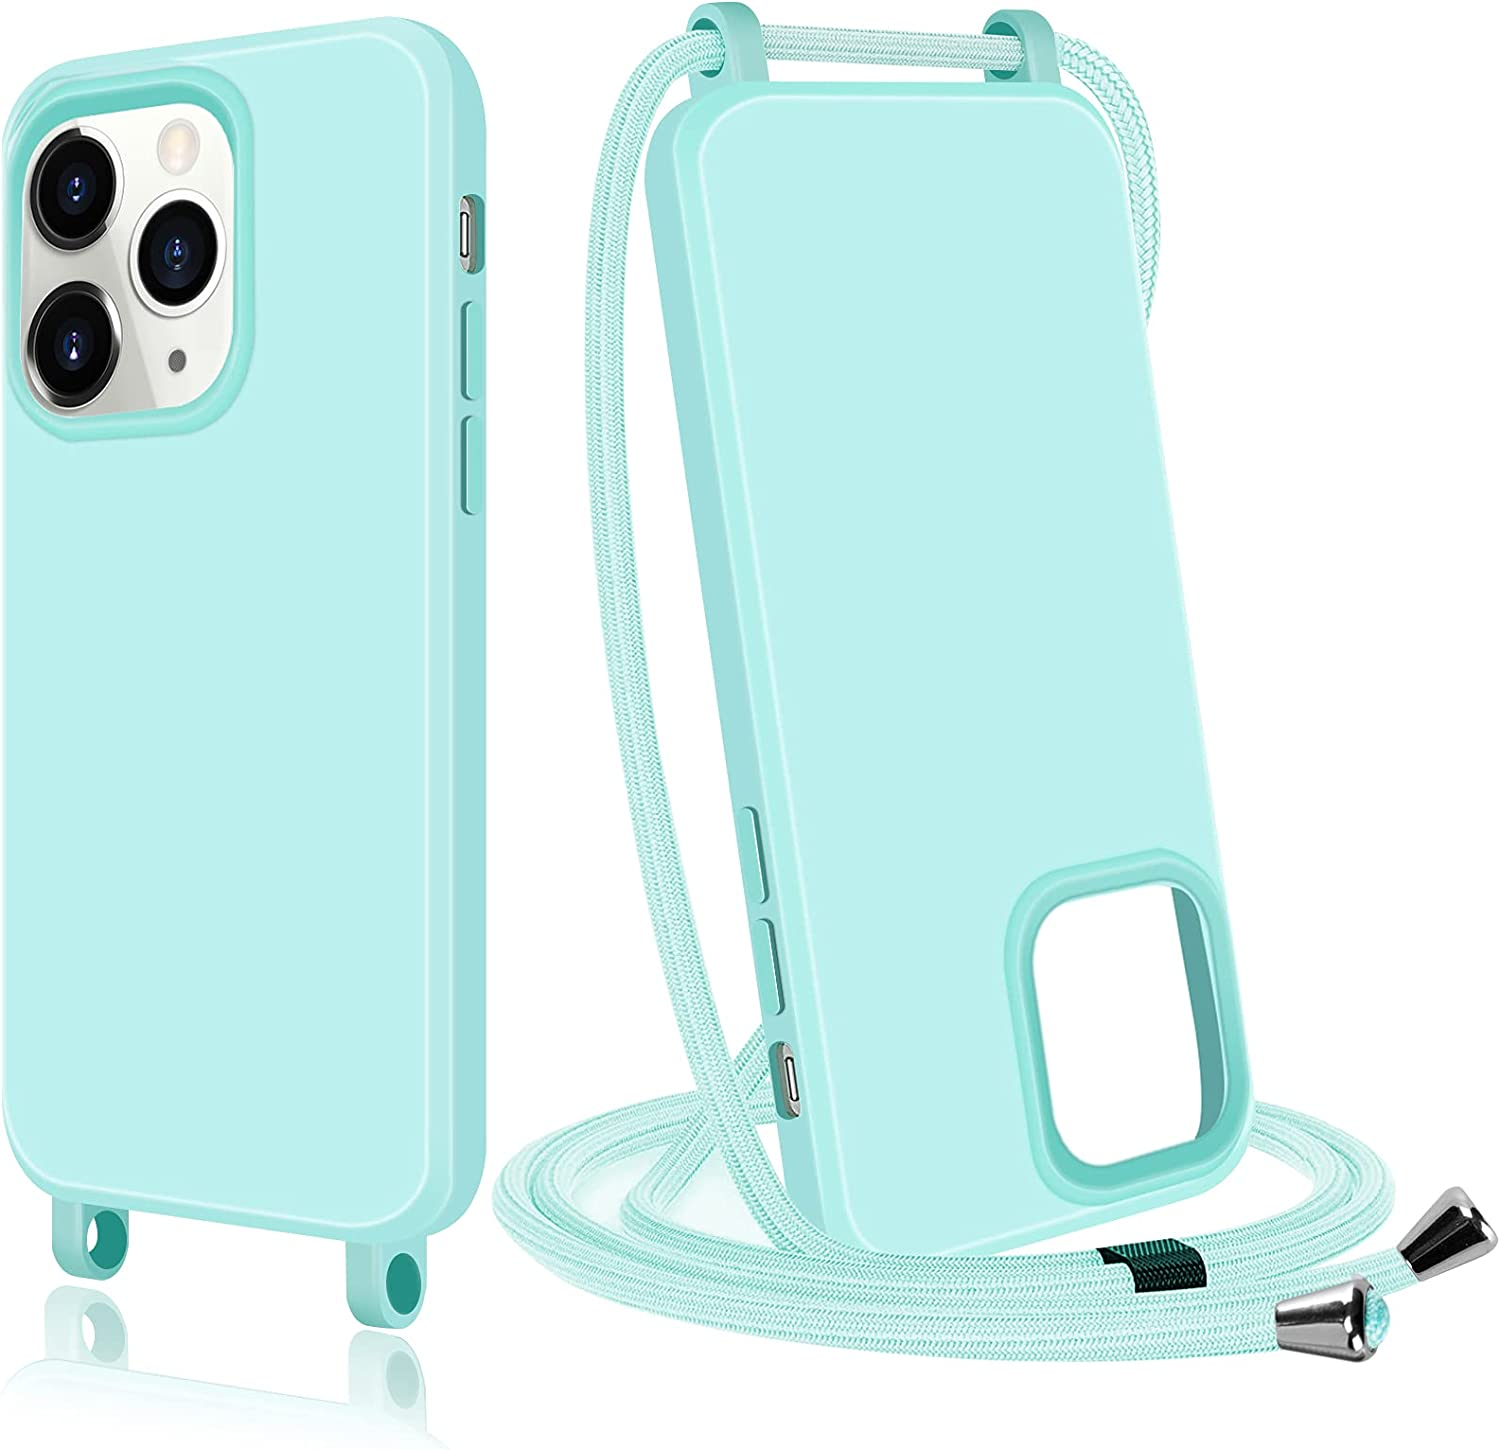 Qoosea Compatible with iPhone 13 Pro Max Case 6.7inch with Lanyard Soft Cover for iPhone 13 Pro Max 6.7'' Green